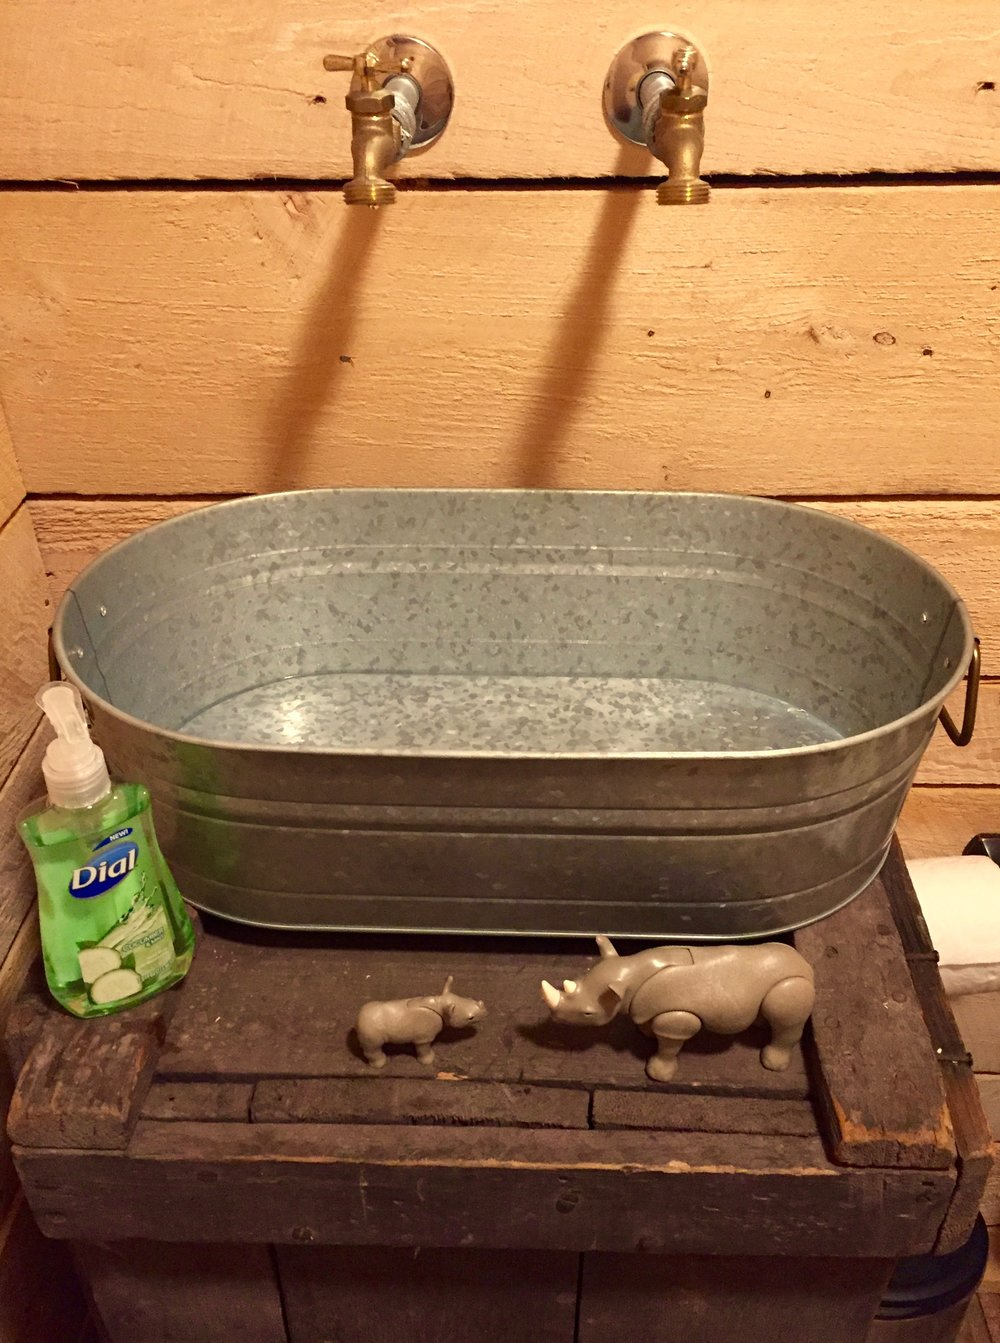 Archer (and his toy rhinos) loved the rustic sink in Hop Barn's bathroom.